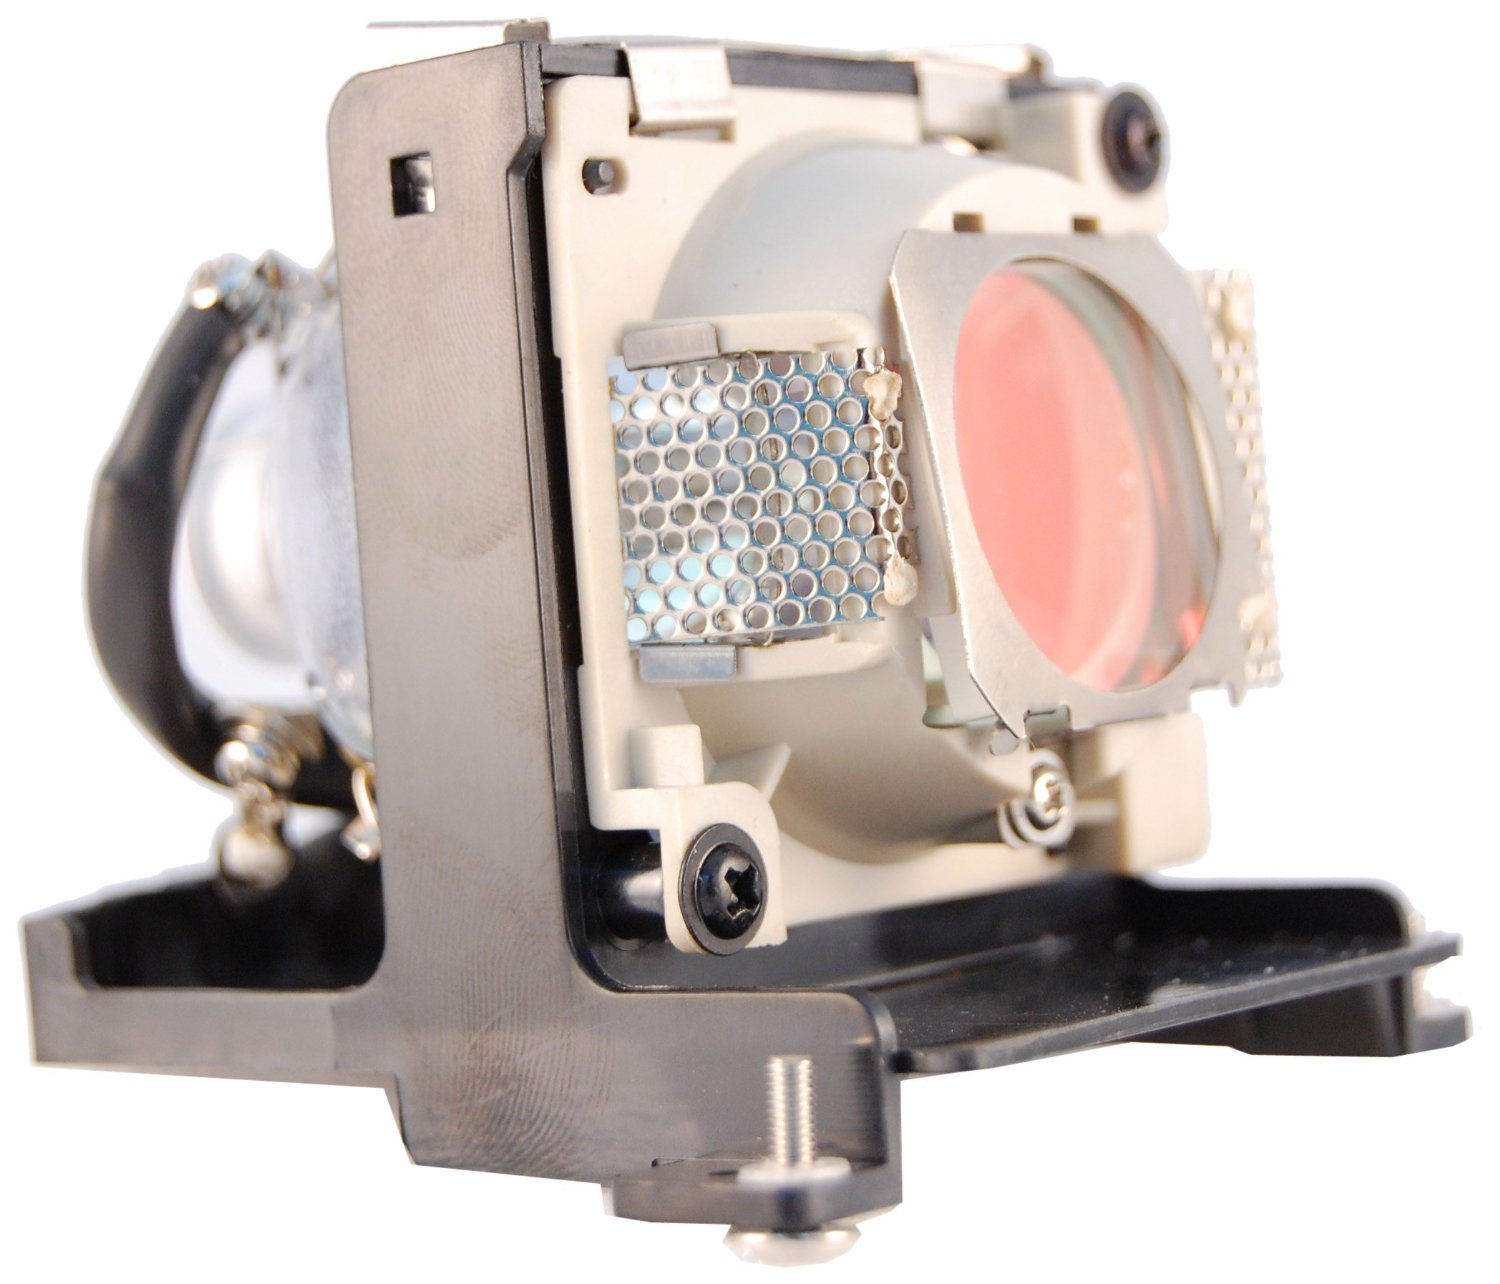 60.J3503.CB1 for BenQ DS760 PB8120 PB8220 PB8230 DX760 Projector Lamp Bulb with housing 60 j3503 cb1 compatible bare lamp with housing for benq ds760 dx760 pb8100 pb8120 pb8210 pb8220 pb8230 projectors